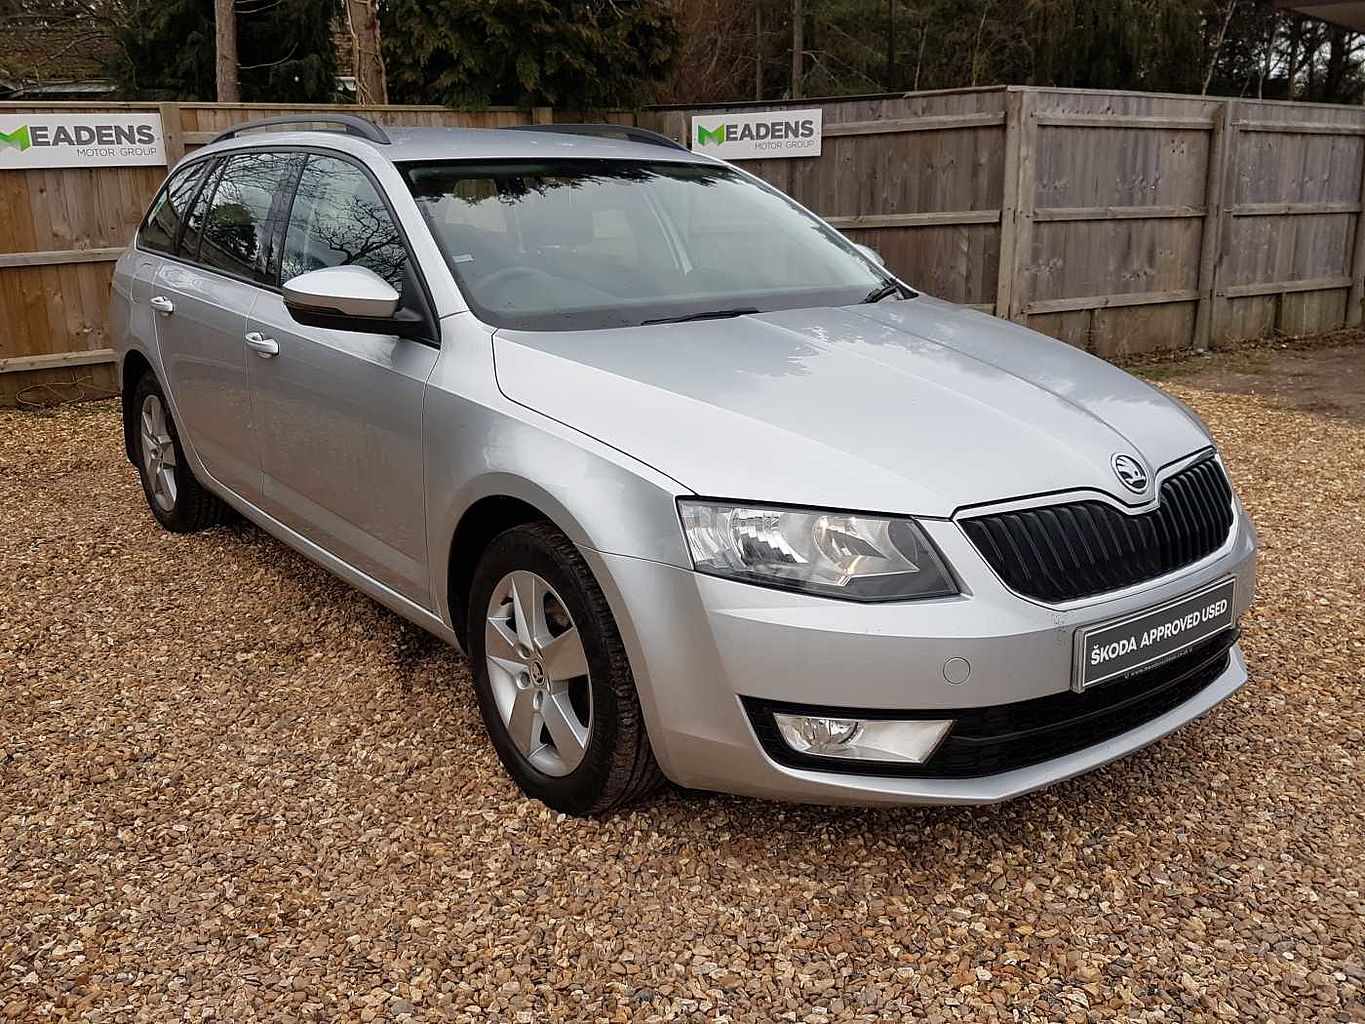 SKODA Octavia 1.4 TSI SE (140PS) DSG 5-Dr Estate